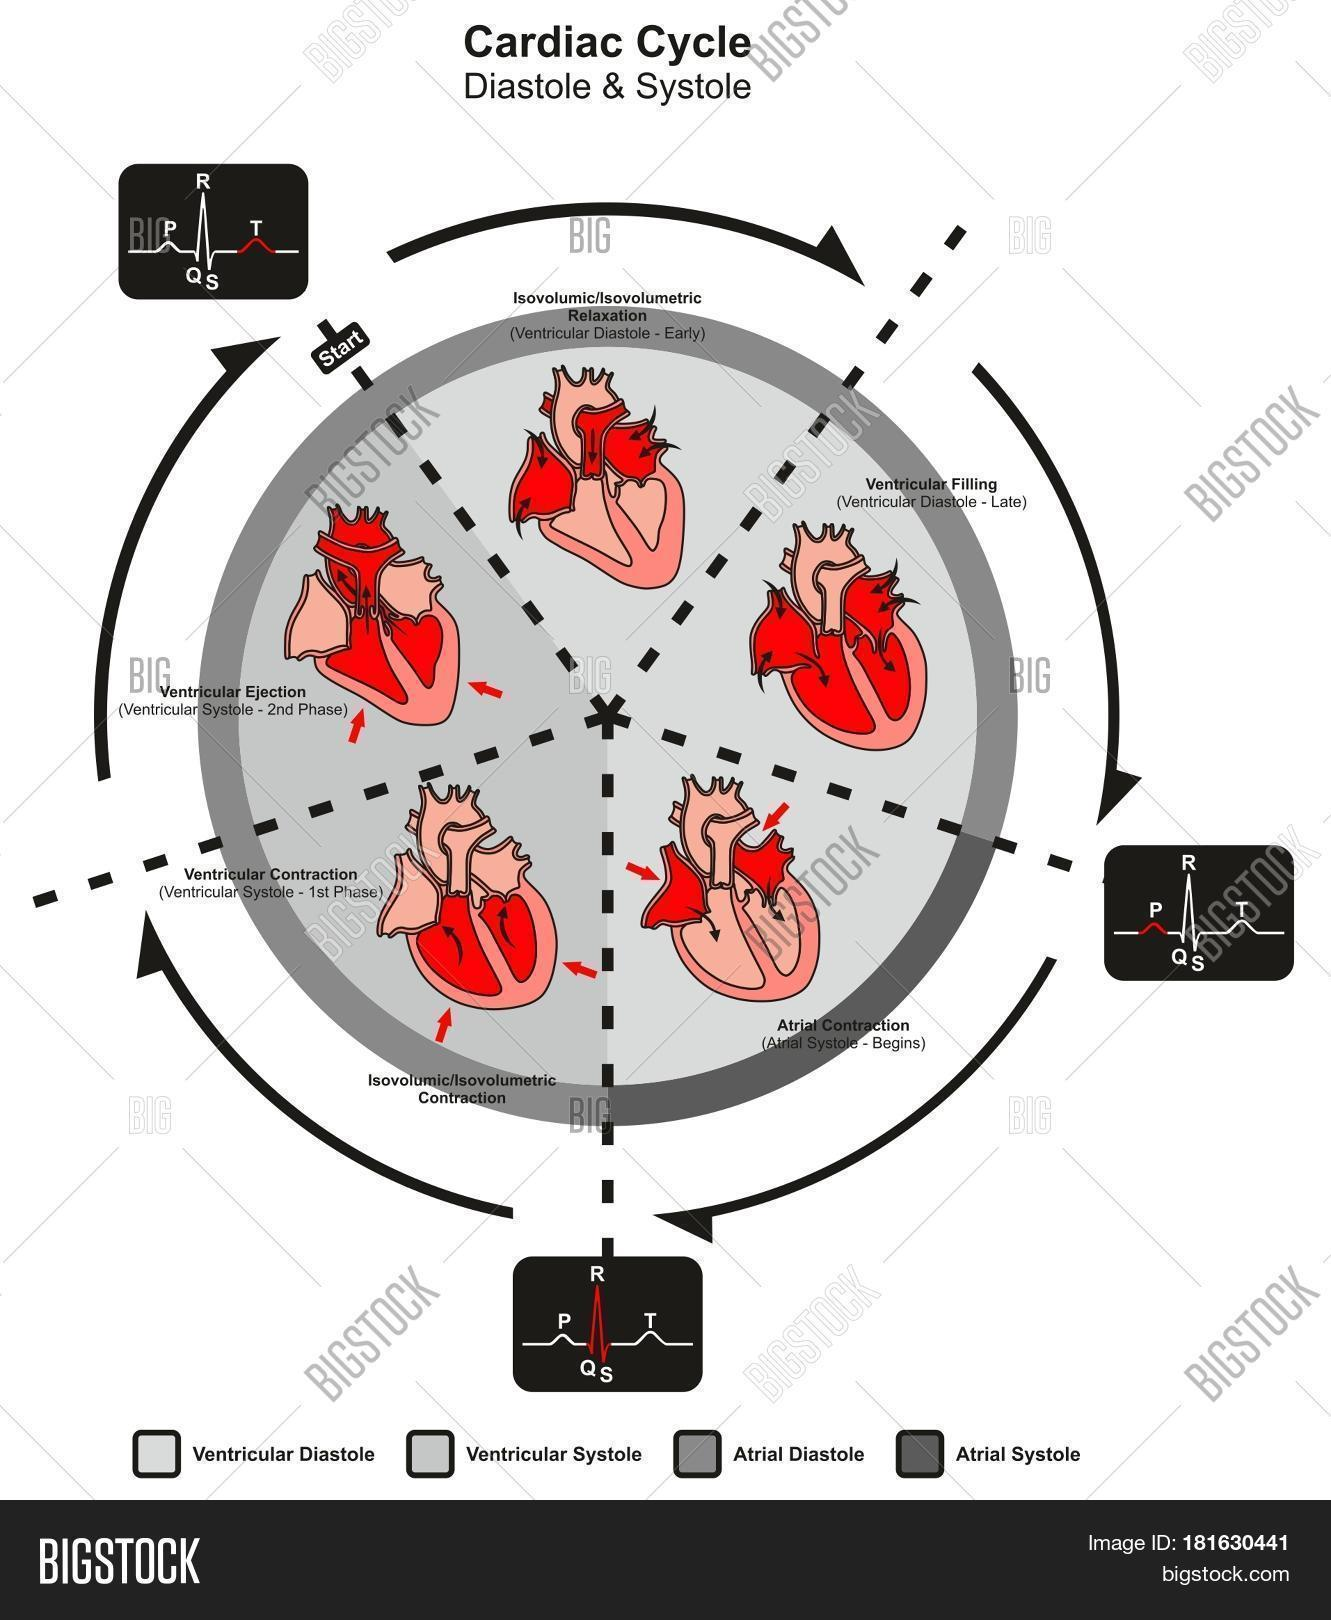 Cardiac Cycle Diastole Image Amp Photo Free Trial